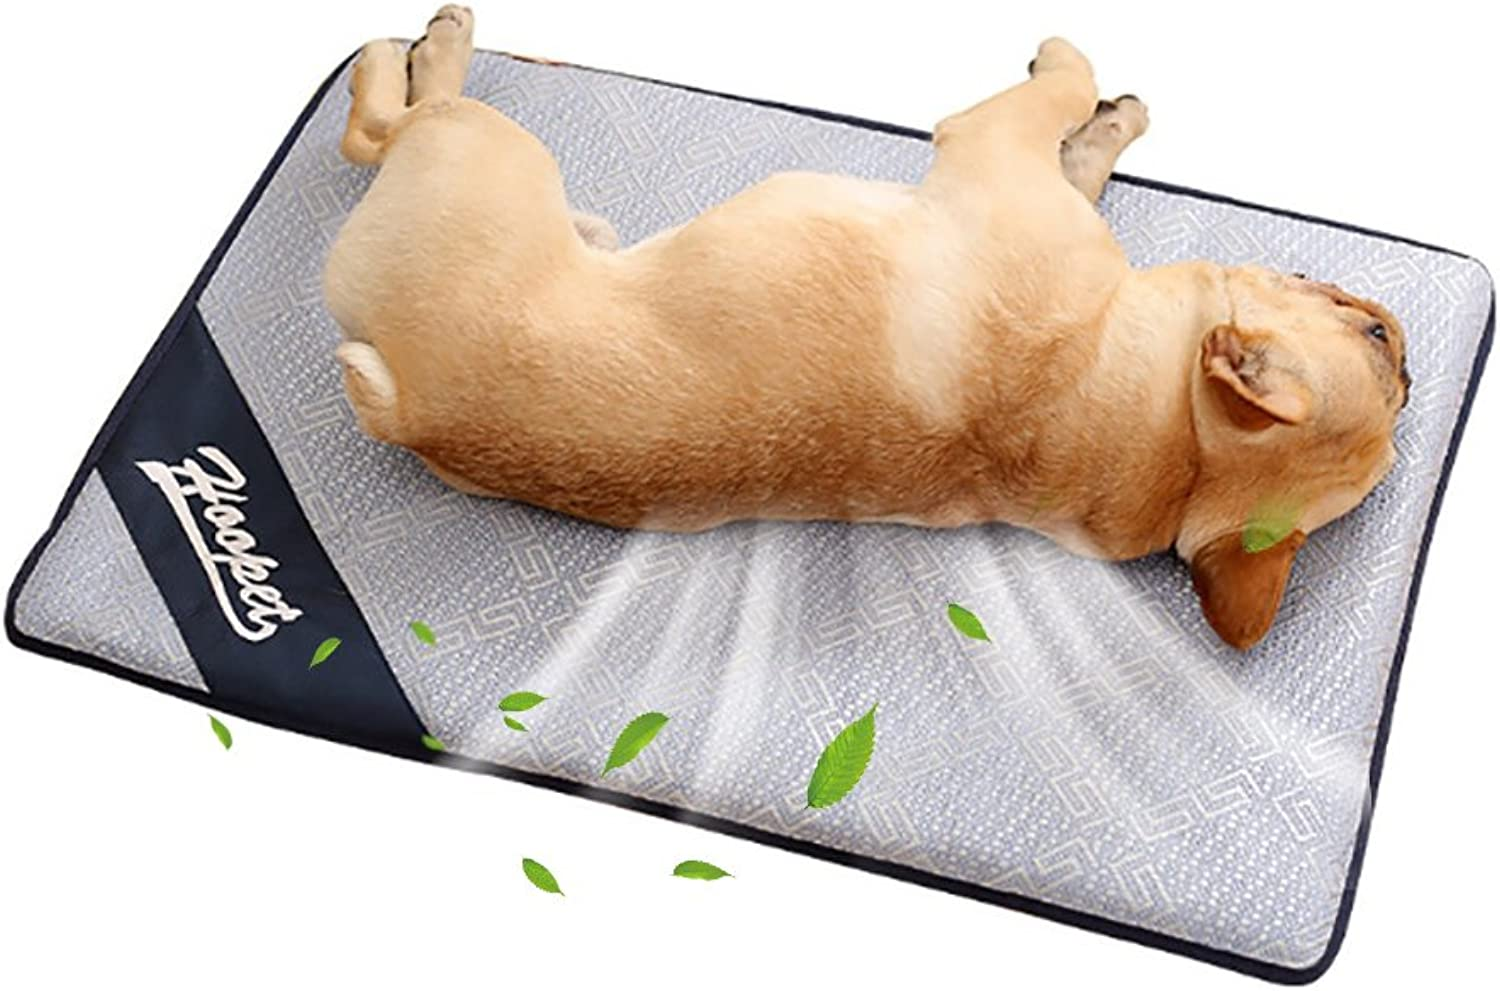 Dog Cooling Pad, Leegoal Dog Cooling Mat Comfortable Summer Sleeping Cooling Bed, NonToxic Breathable Rattan Pet Cooling Mat for Dog, Cat